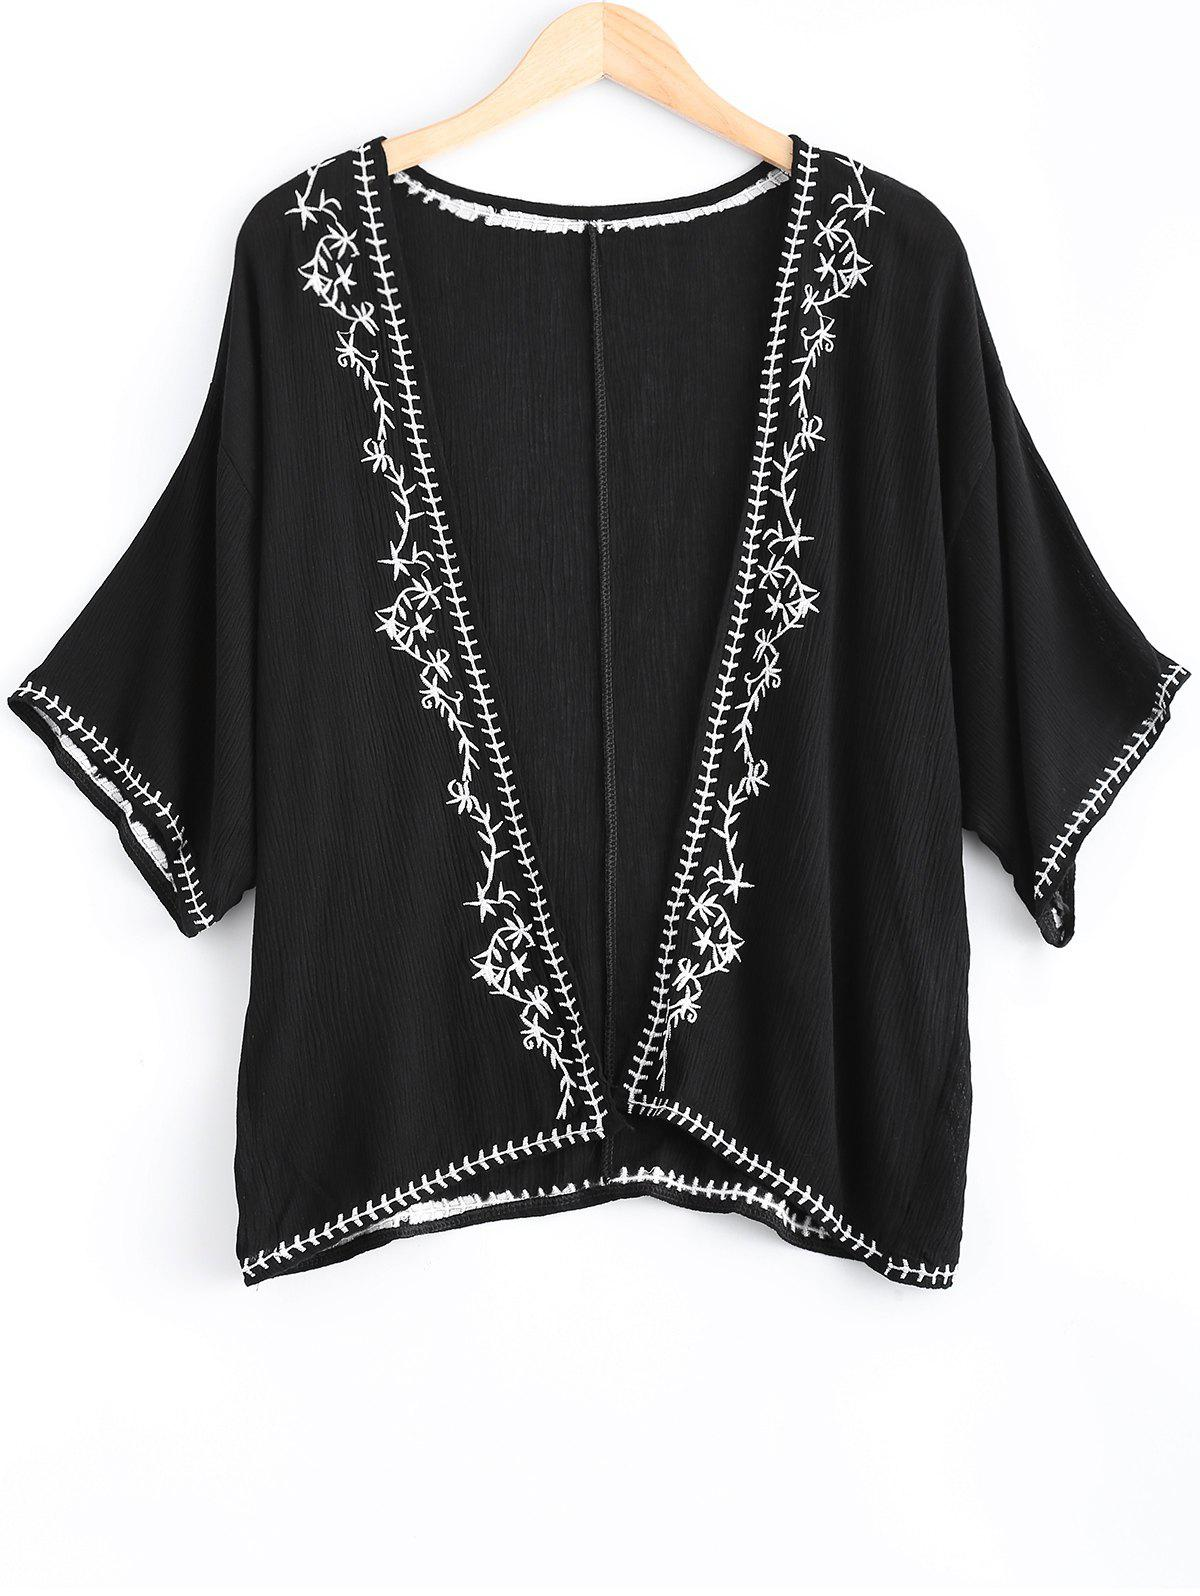 Loose-Fitting Embroidered Short Sleeves KimonoWomen<br><br><br>Size: ONE SIZE(FIT SIZE XS TO M)<br>Color: BLACK